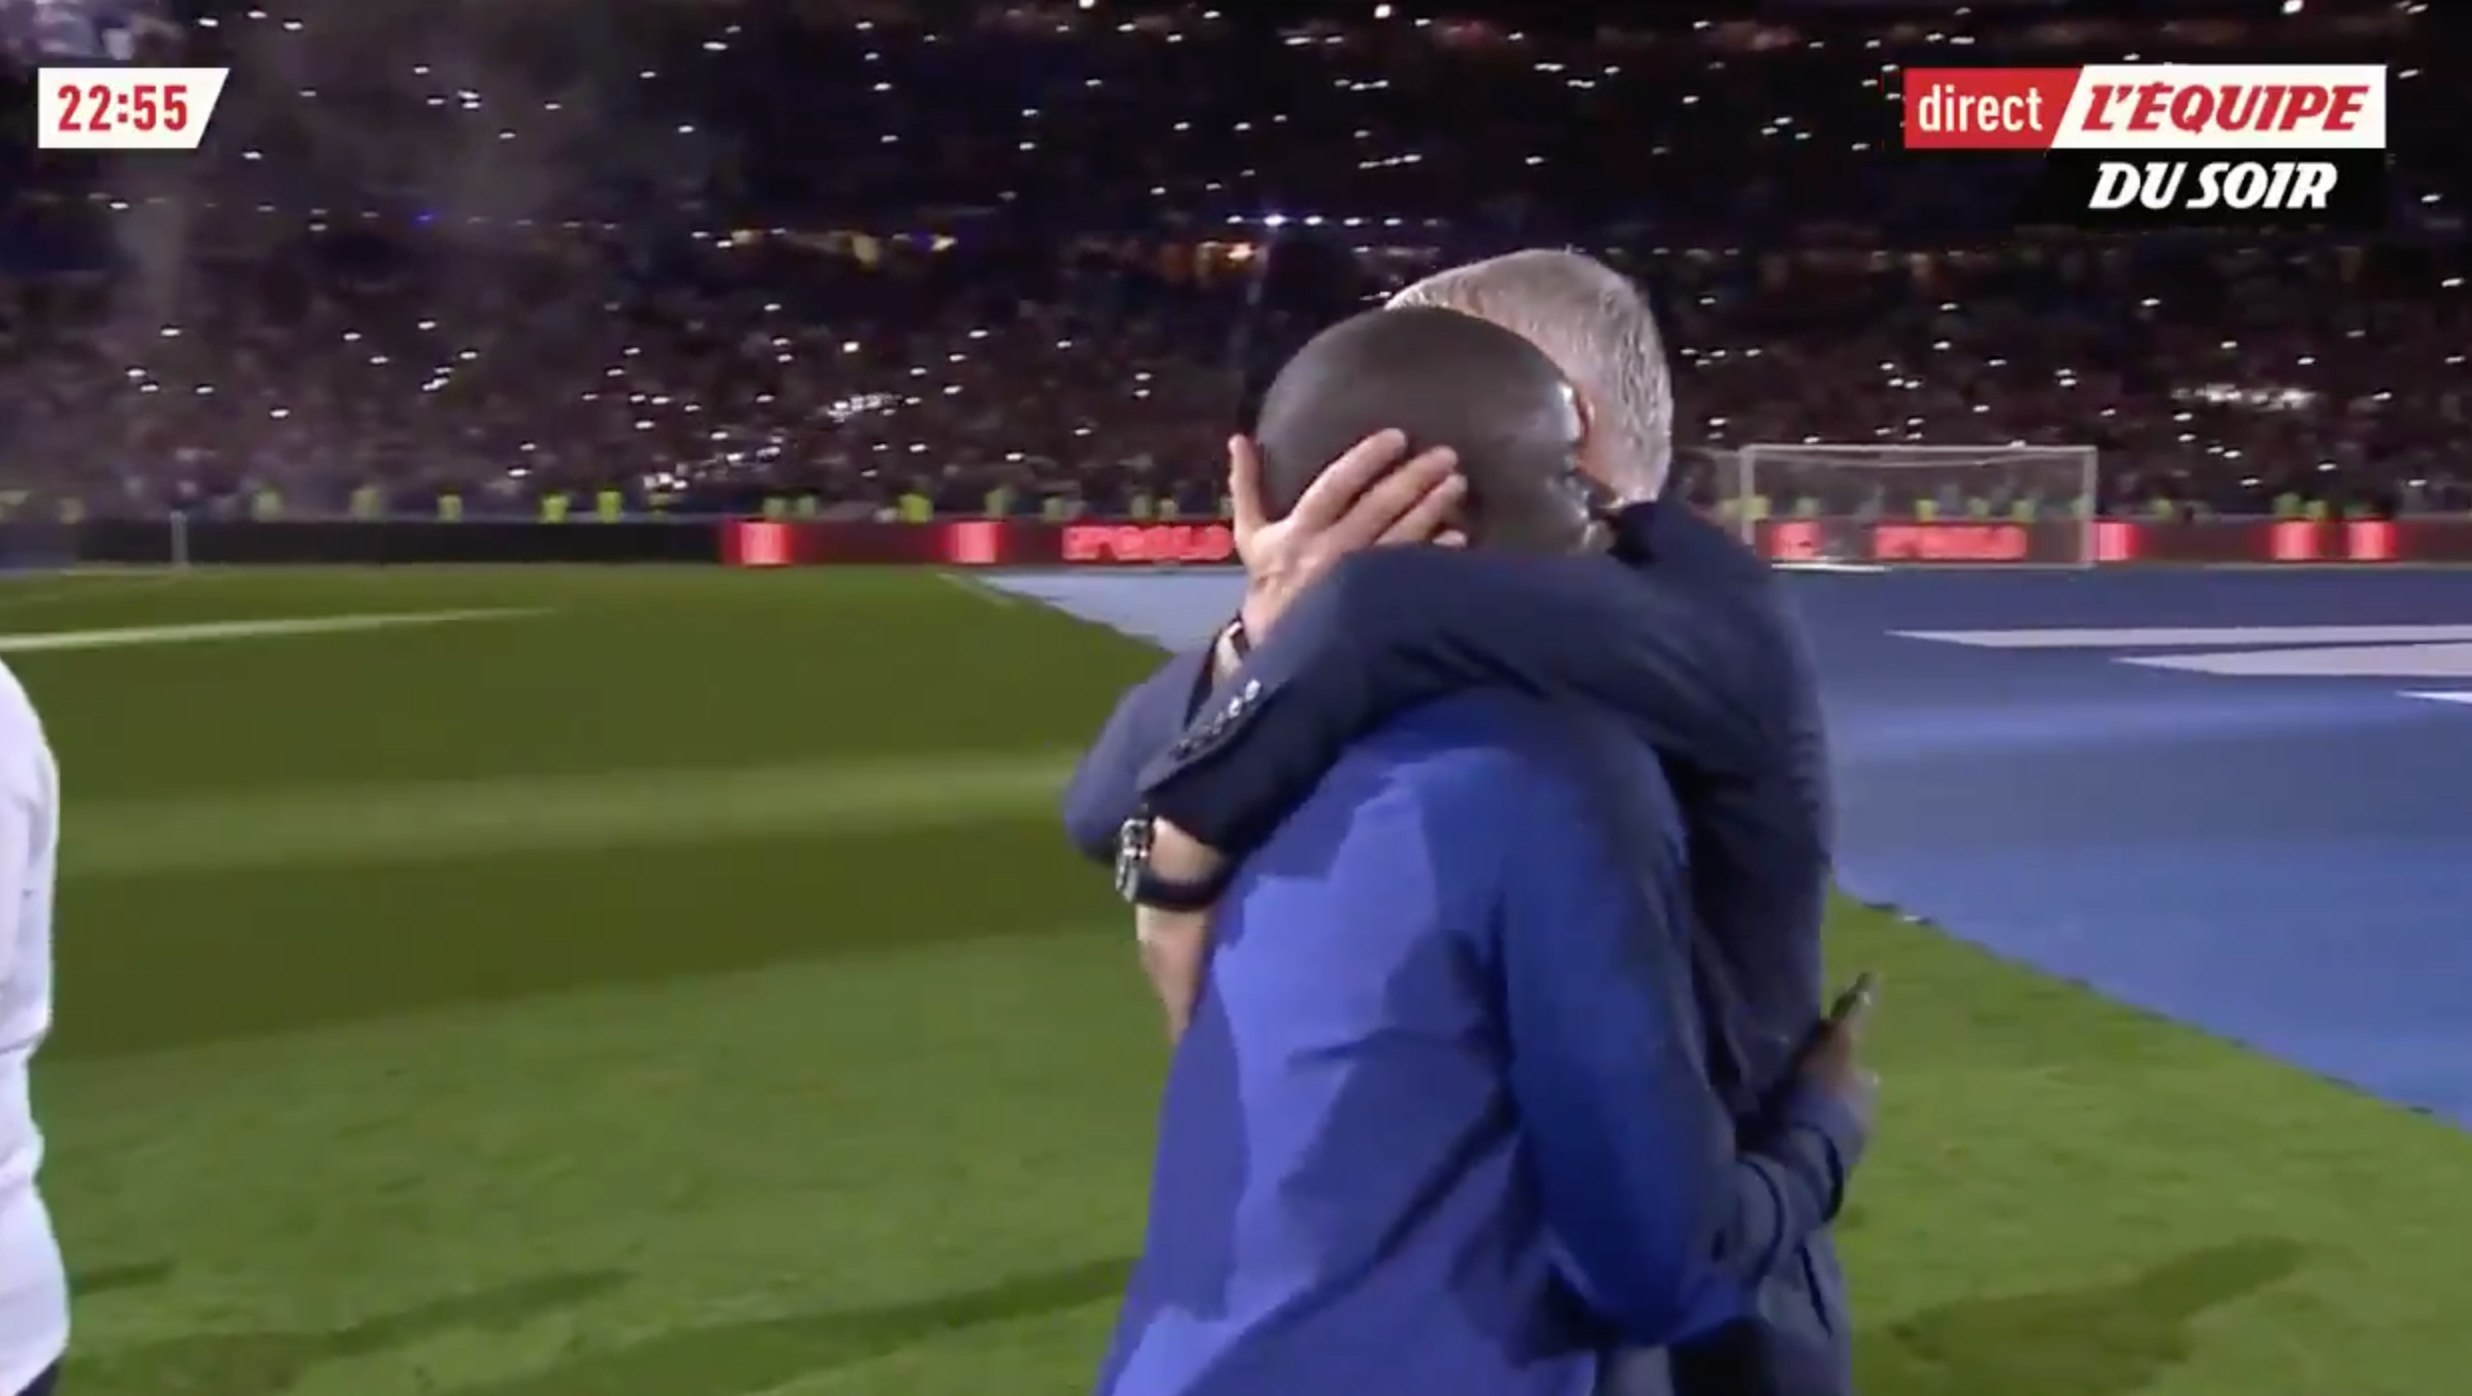 WATCH: Kante Receives Absolutely Amazing Reception From French Fans And Staff